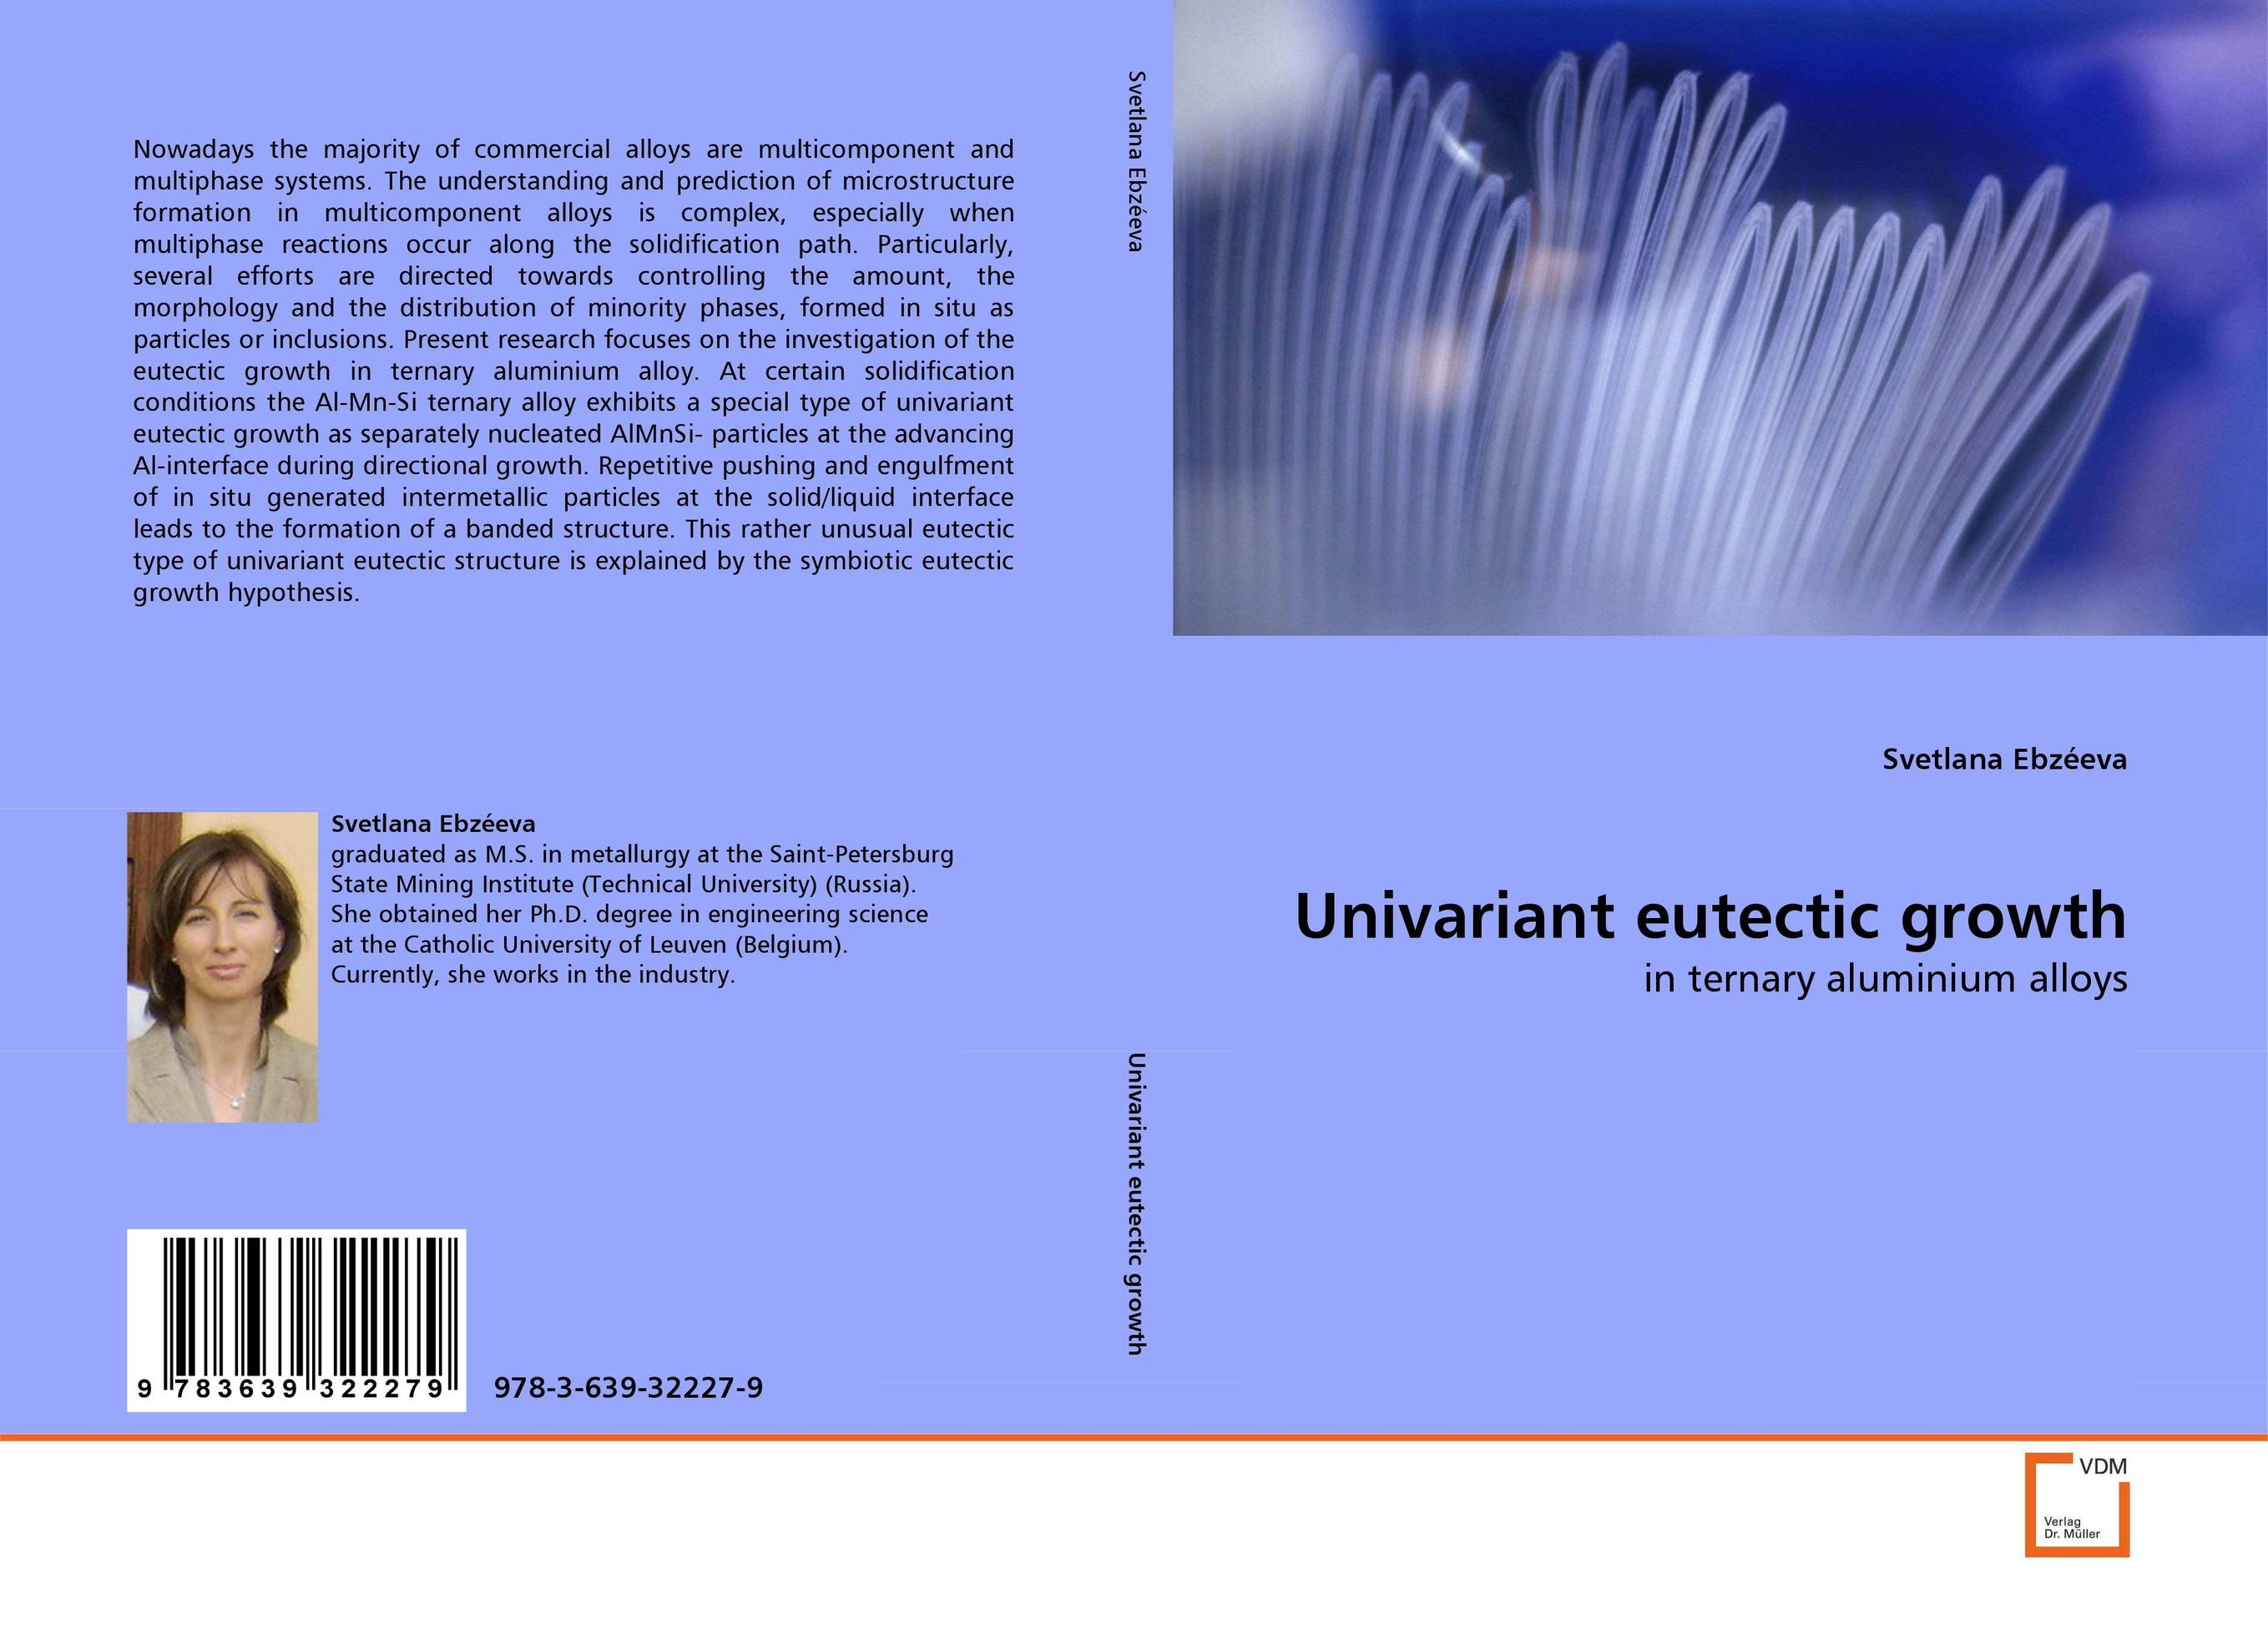 Univariant eutectic growth